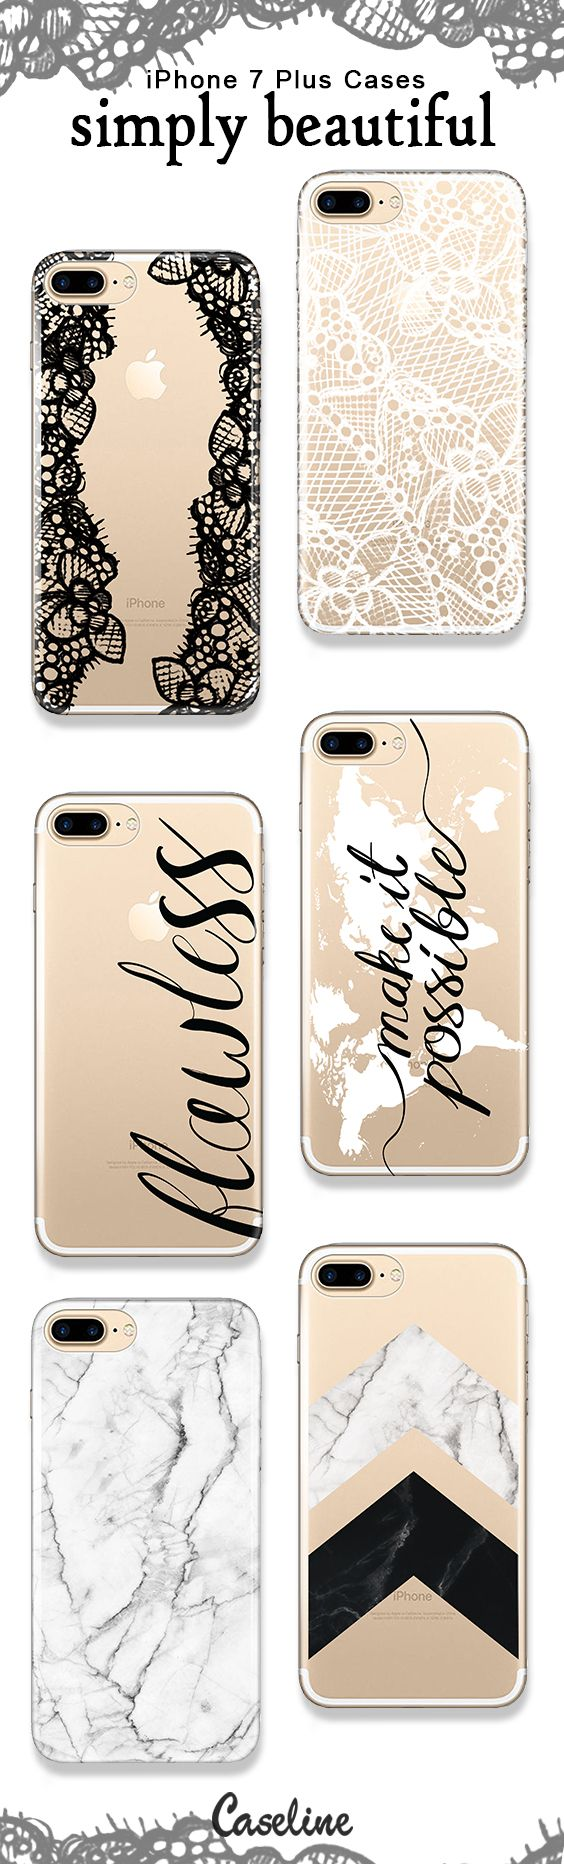 simply beautiful collection caseline casephone case cover etui telefon cover smartfon lace make it possible marble